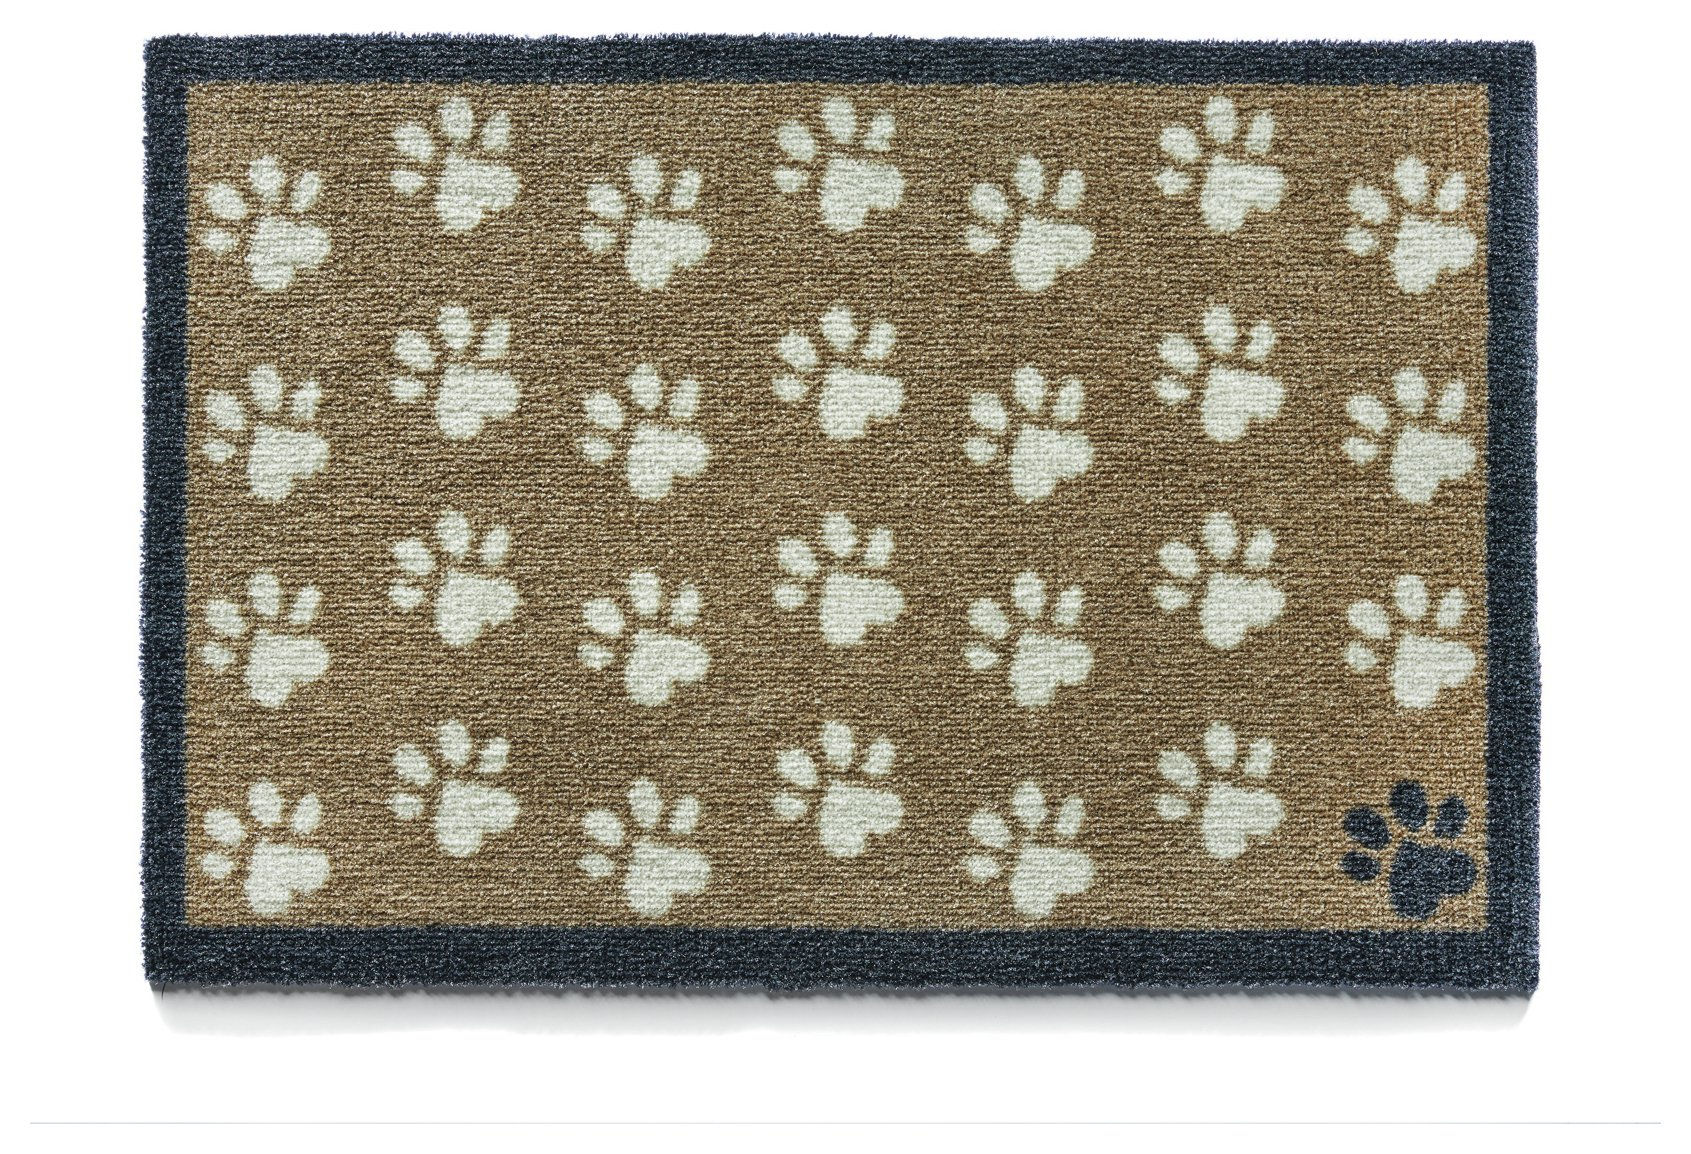 howler-scratch-small-paws-doormat-100x50cm-multi